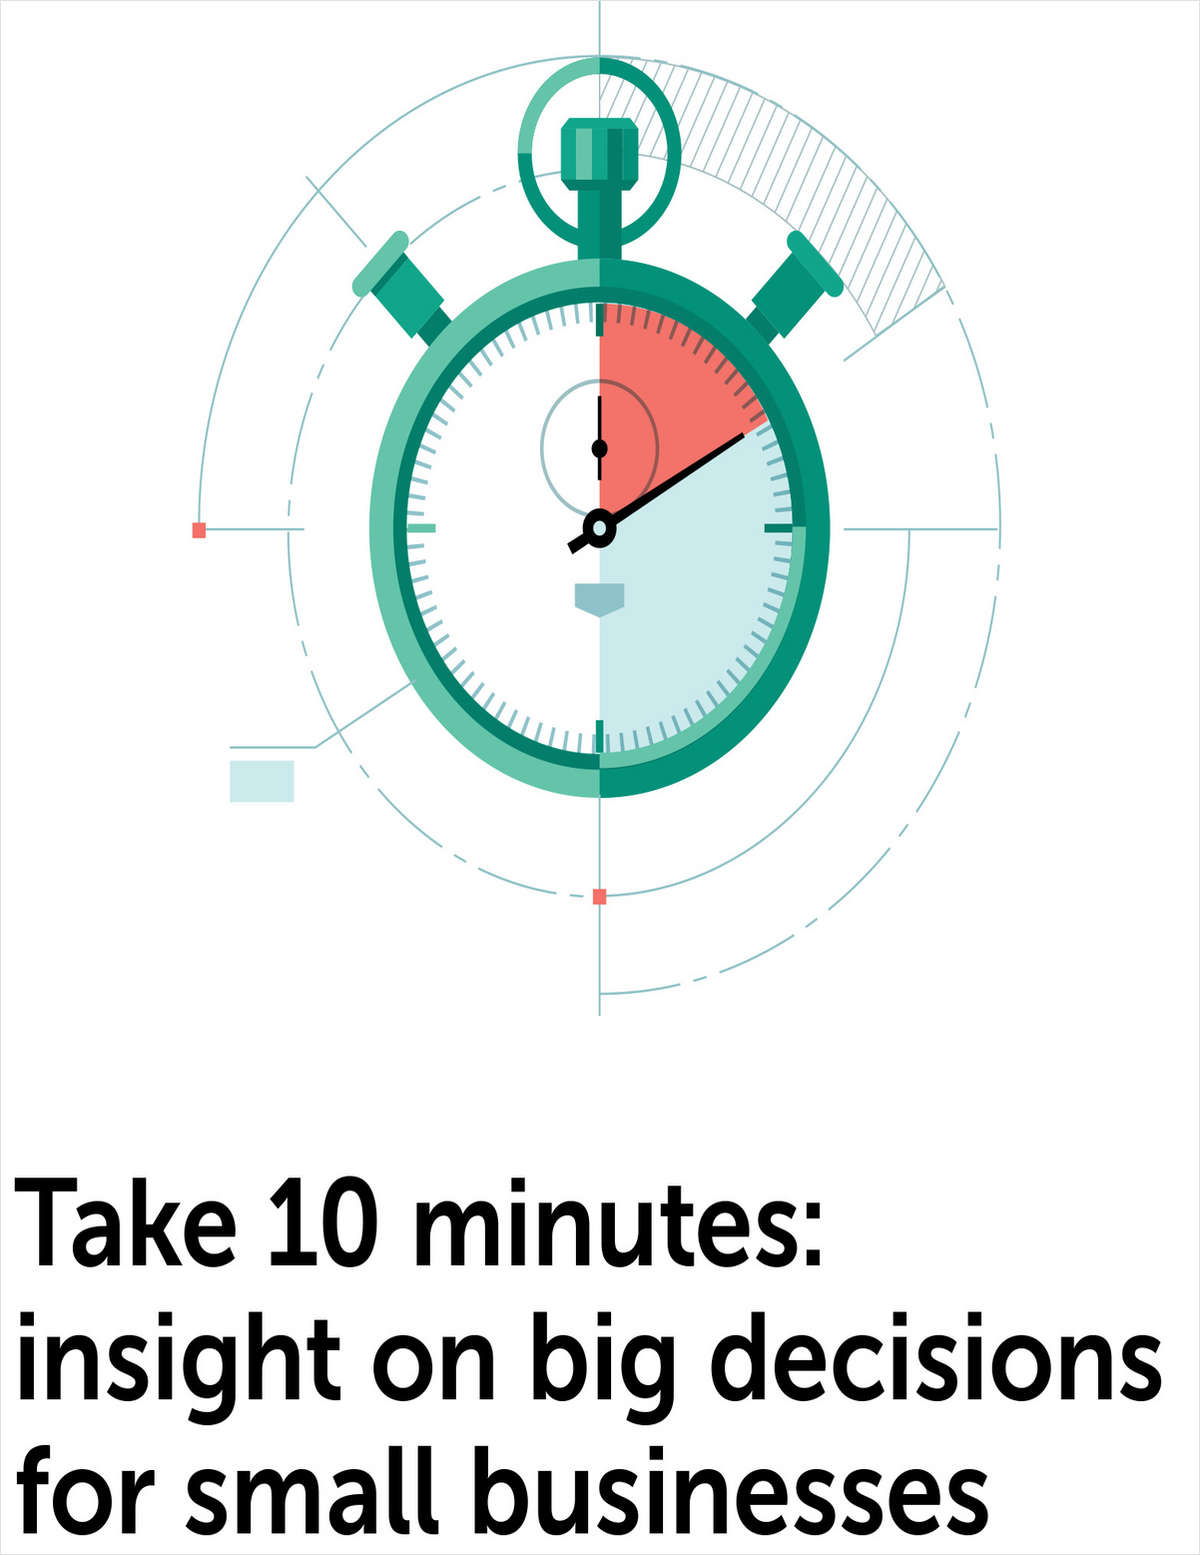 Take 10: Insight on Big Decisions for Small Businesses